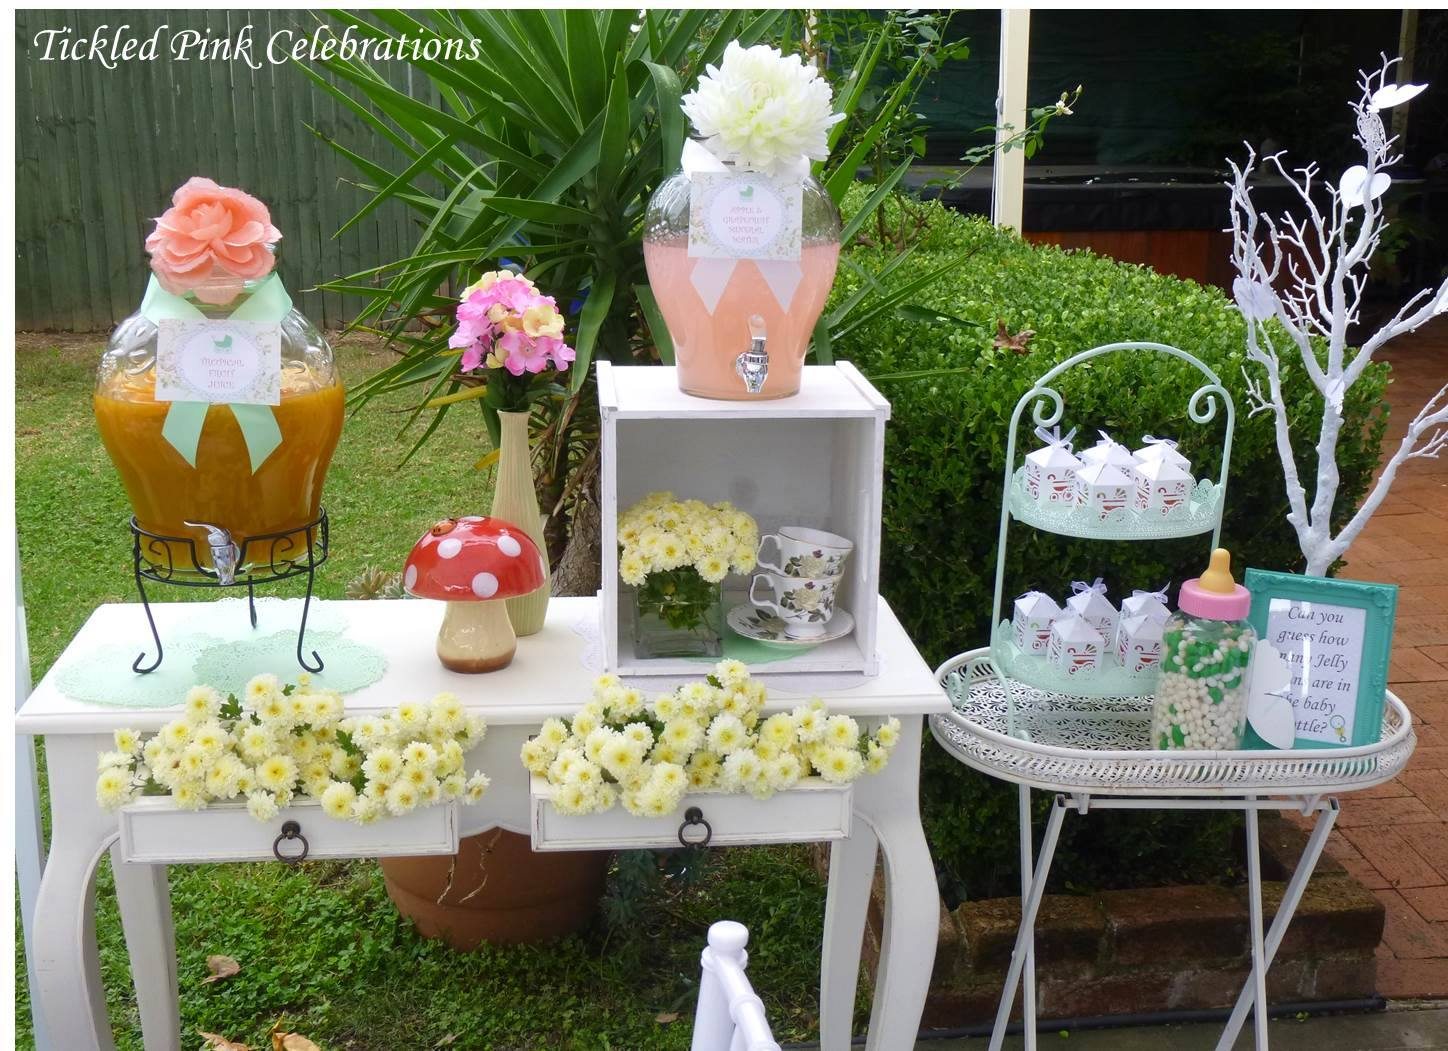 Garden Baby Shower Ideas baby shower decorations fairy garden bing images baby showerfirst birthday ideas pinterest baby shower decorations Enchanted Garden Baby Shower Decoration Ideas